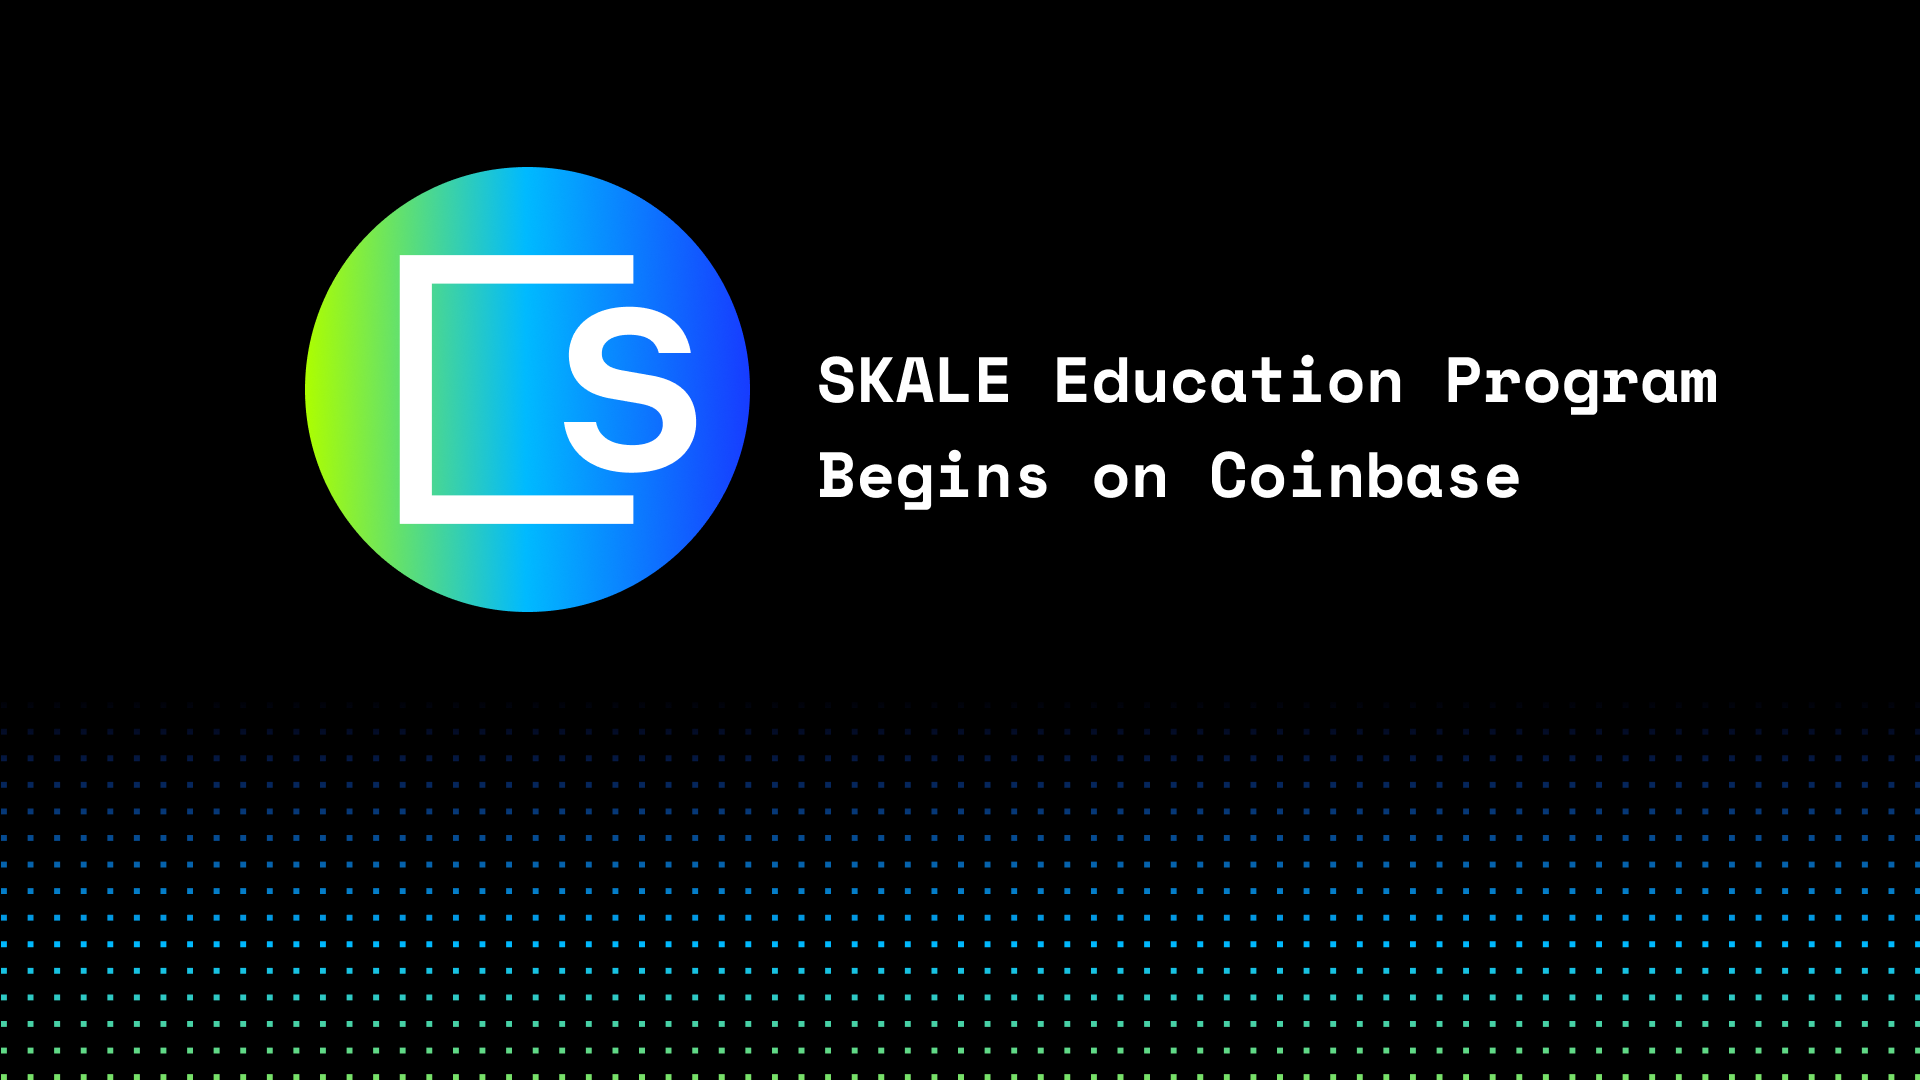 SKALE Education Campaign Begins on Coinbase